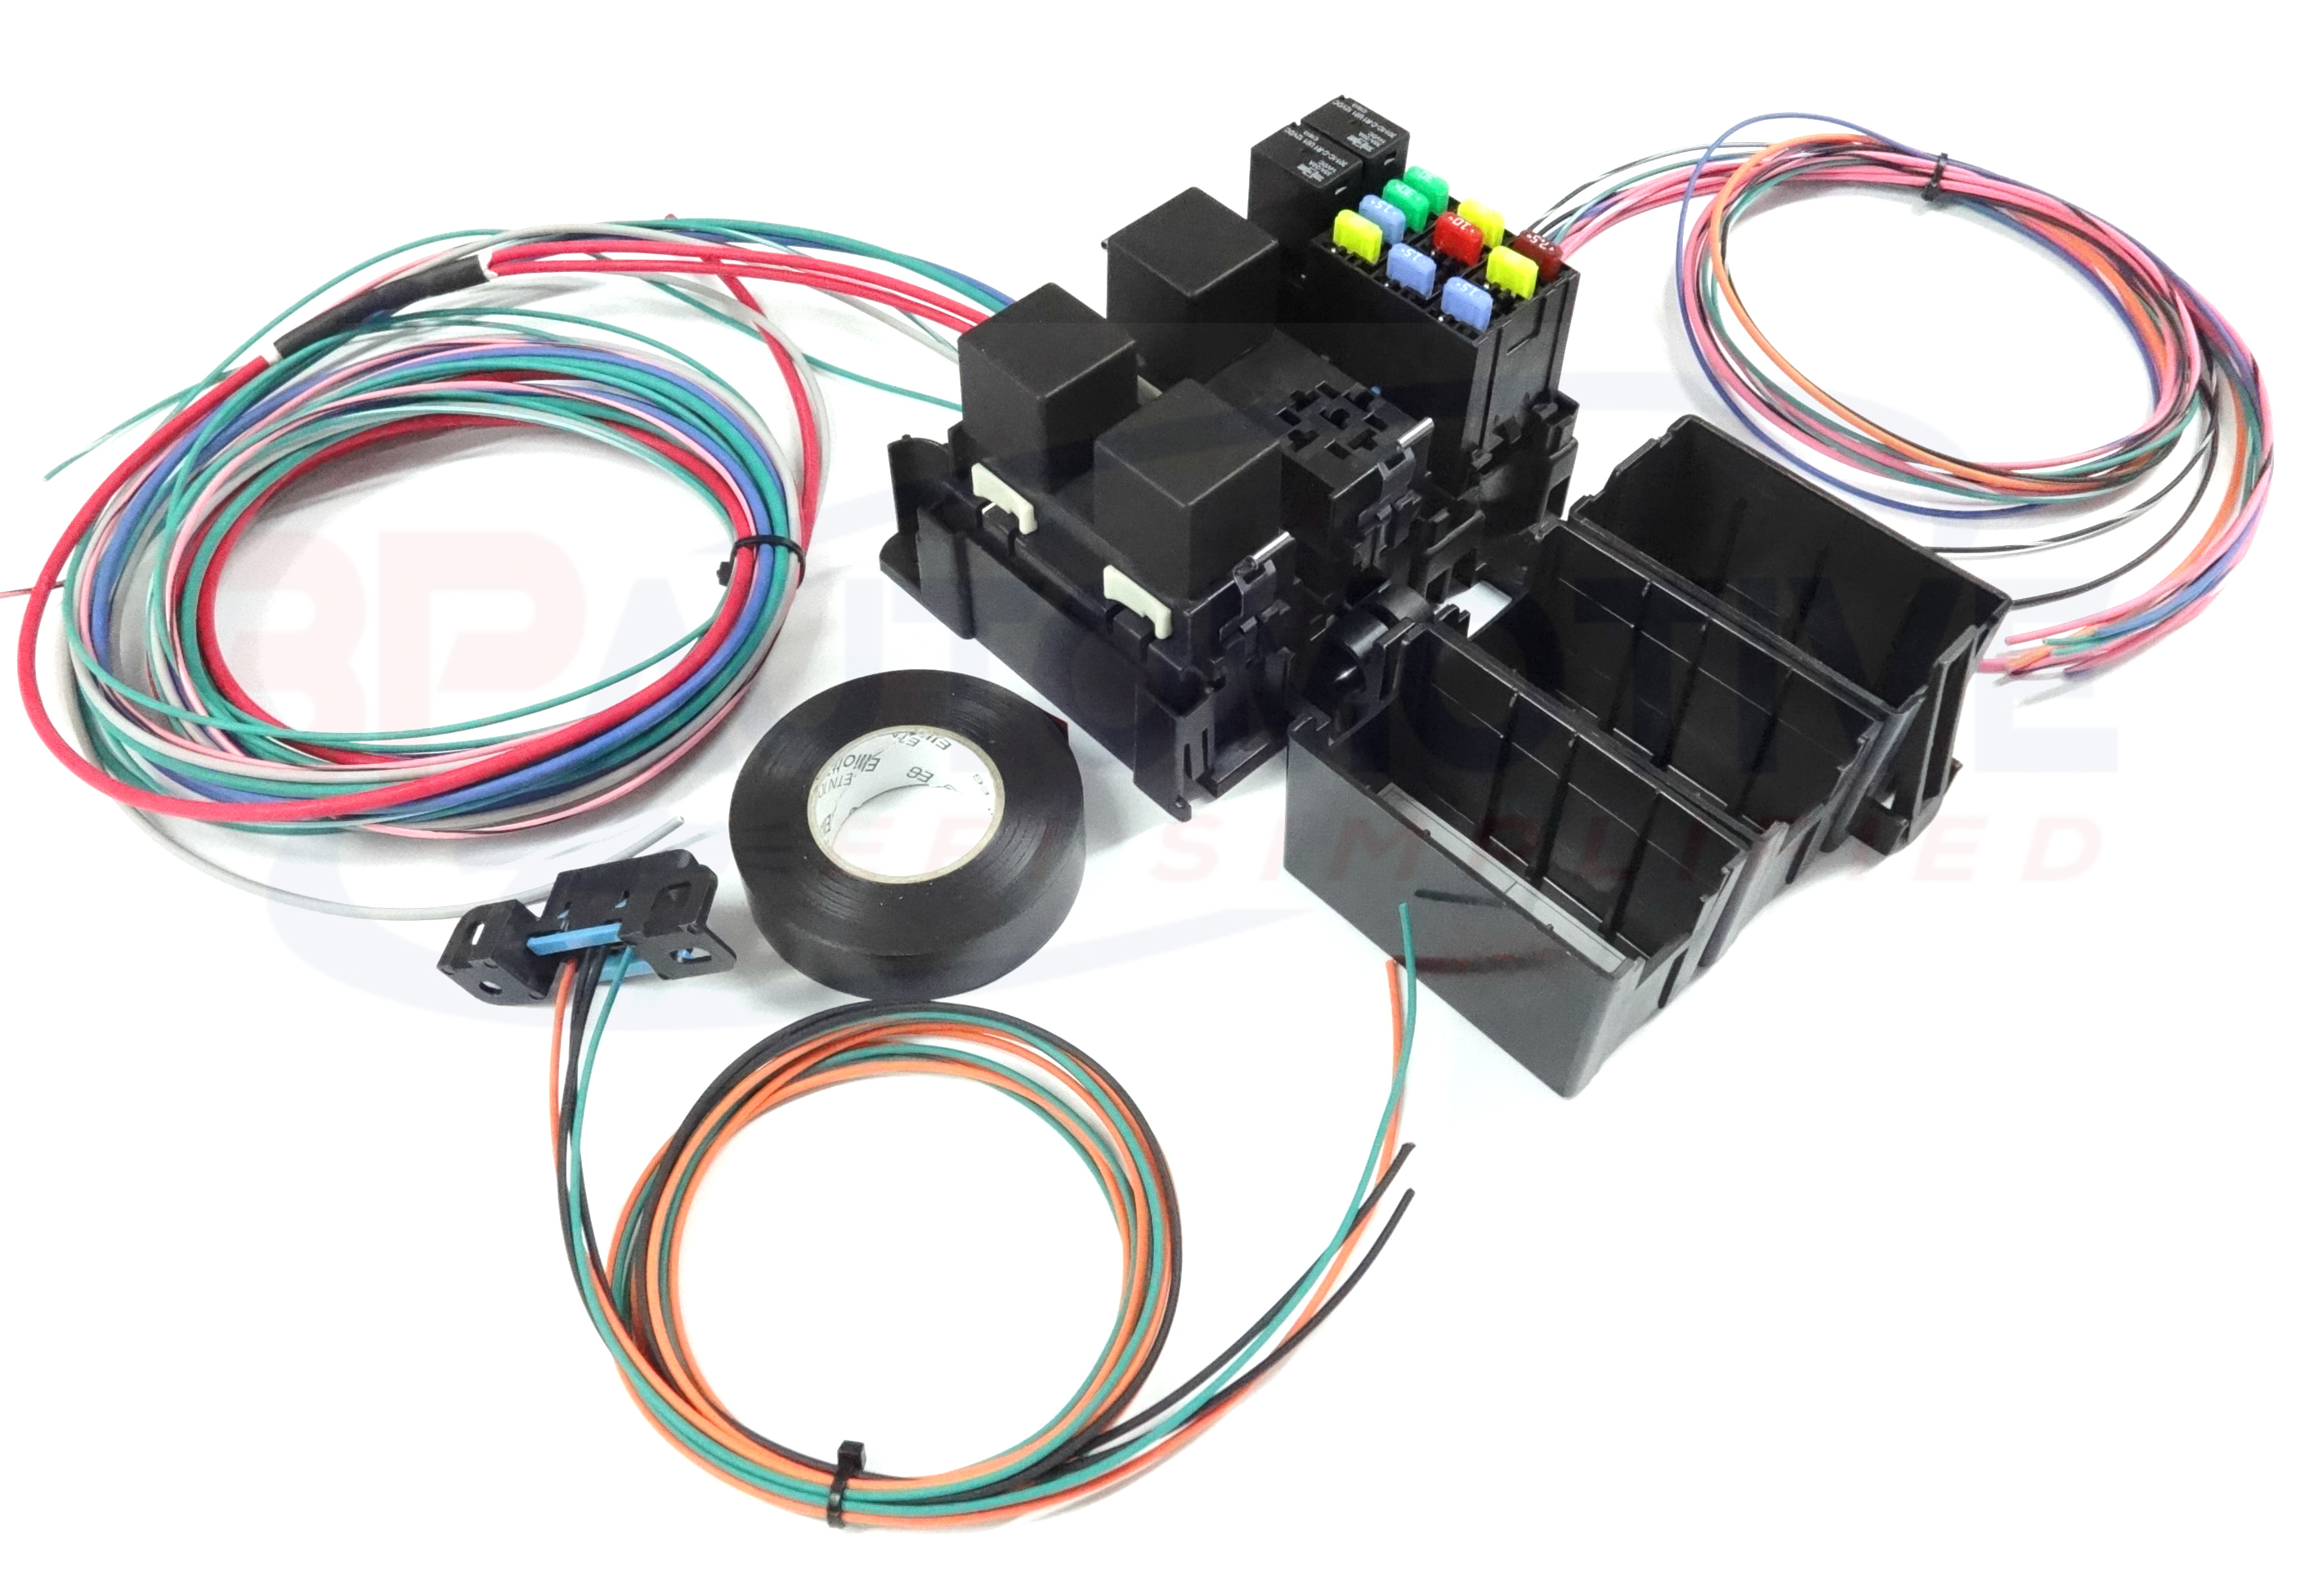 Premium DIY 2 Watermark ls swap diy stand alone factory harness mod kit 5.3 Engine Swap Wiring Harness at crackthecode.co